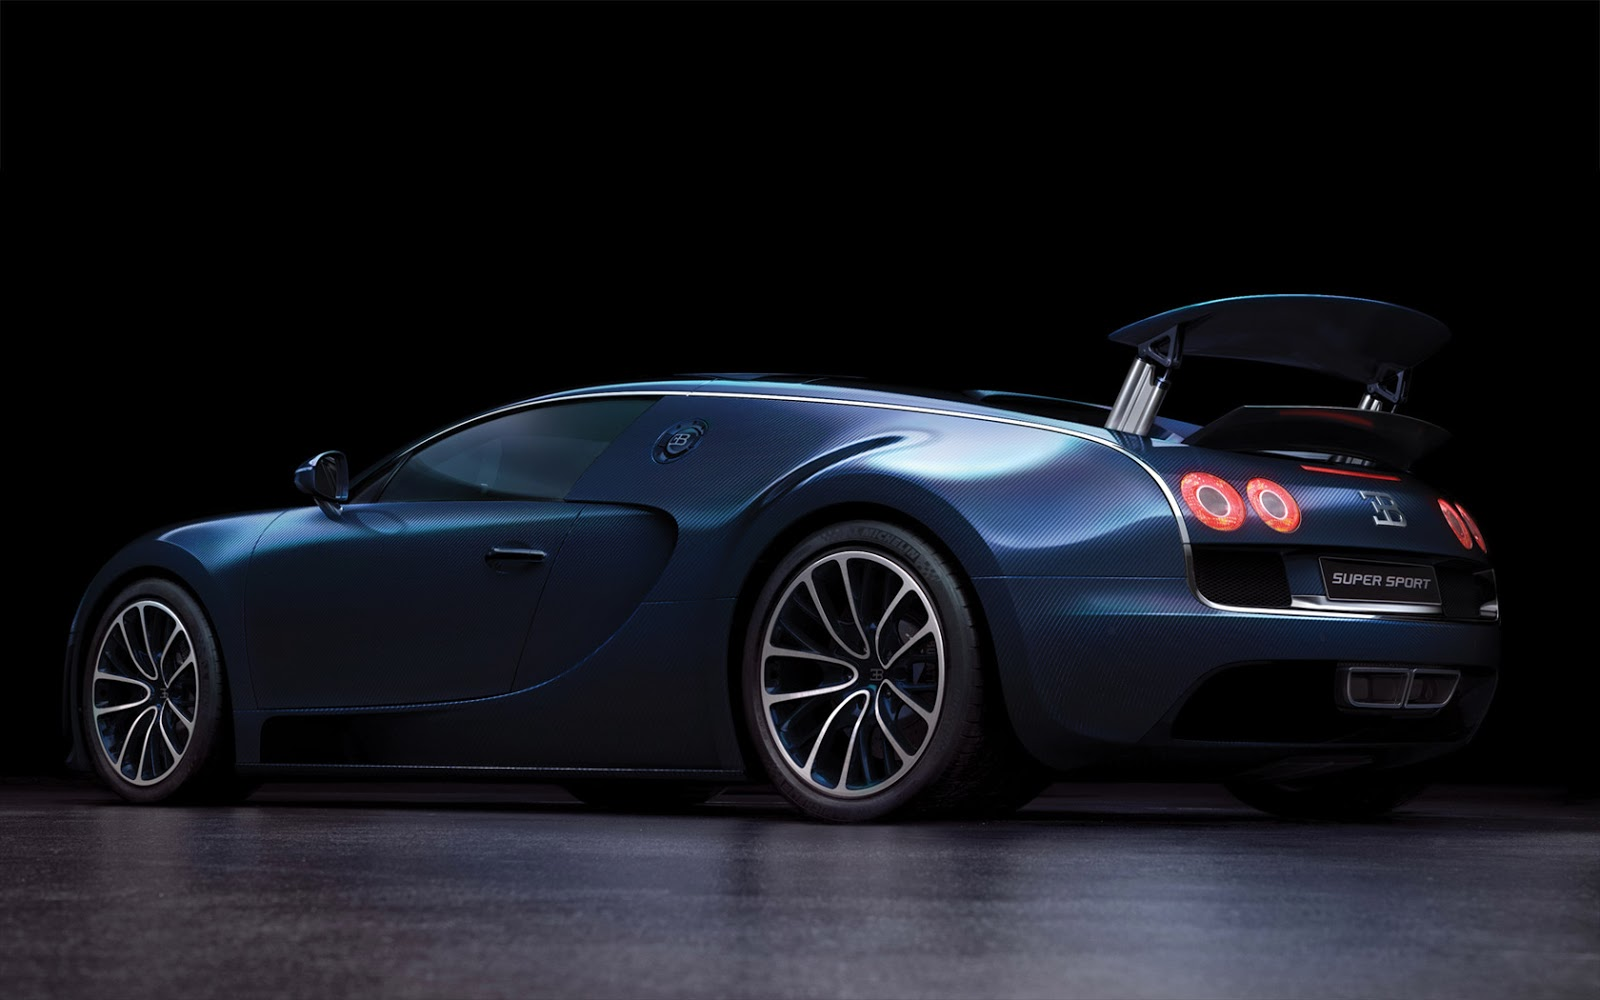 HD Wallpapers: BUGATTI VEYRON HD WALLPAPERS